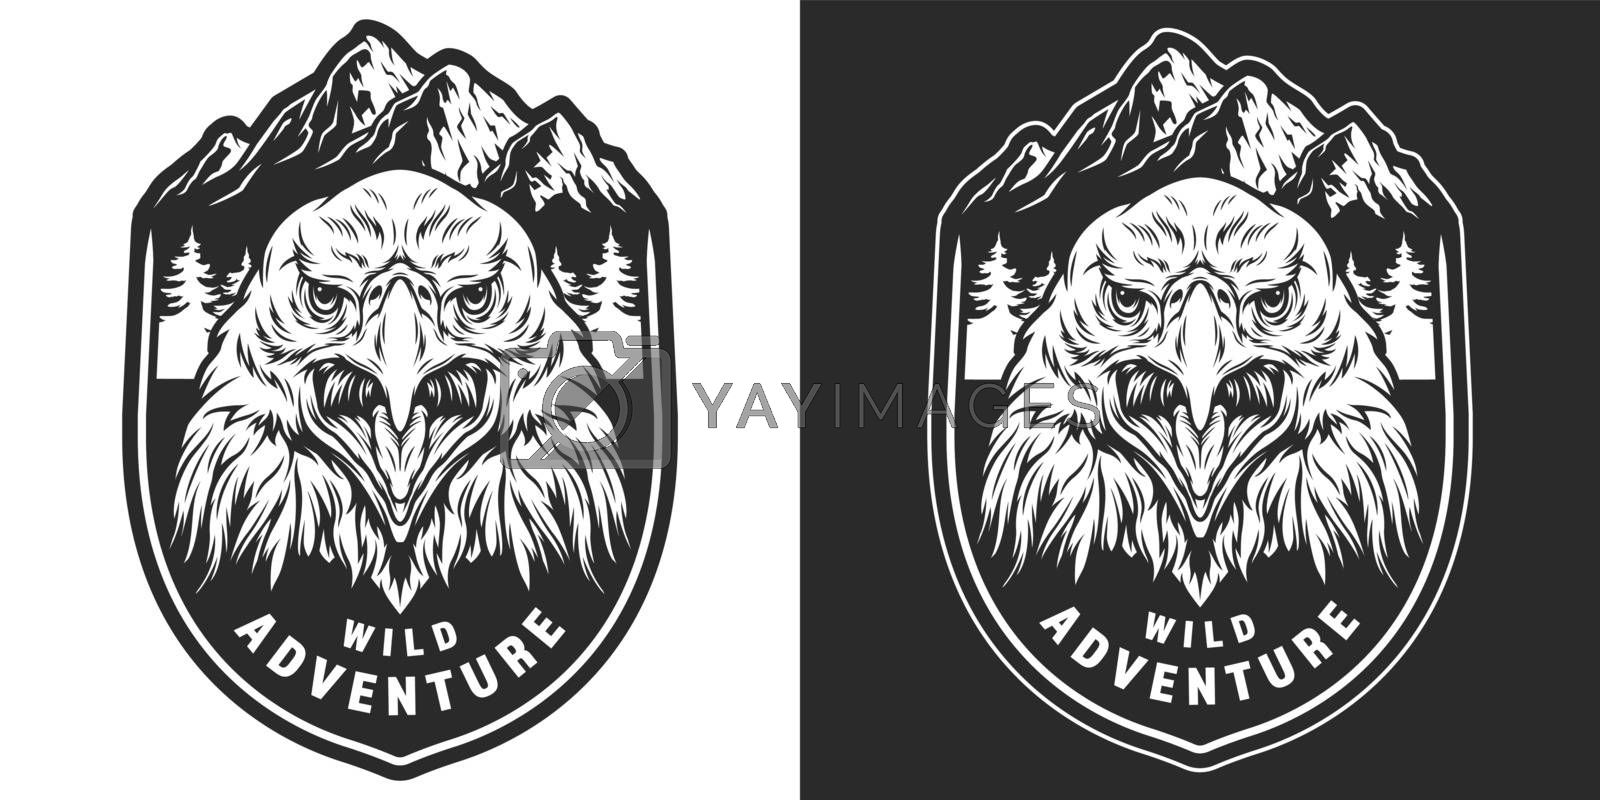 Vintage wild animal monochrome badge with aggressive eagle head on mountains and forest landscape isolated vector illustration